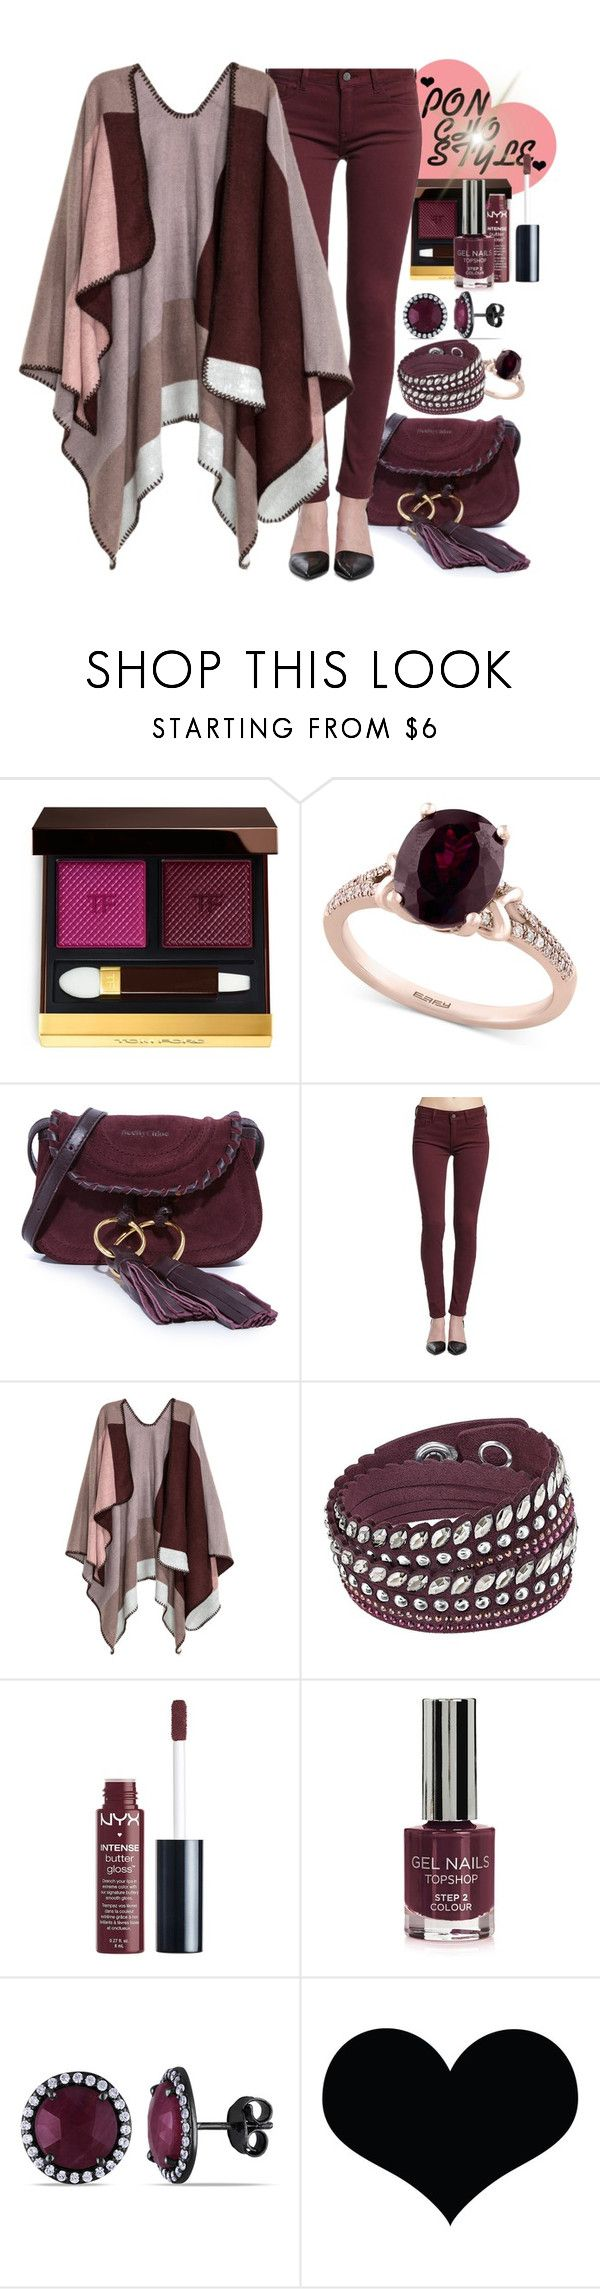 """""""Poncho Style"""" by mmsbeg ❤ liked on Polyvore featuring Tom Ford, Effy Jewelry, See by Chloé, Mavi, H&M, Swarovski, Charlotte Russe, Topshop, Ice and Brika"""